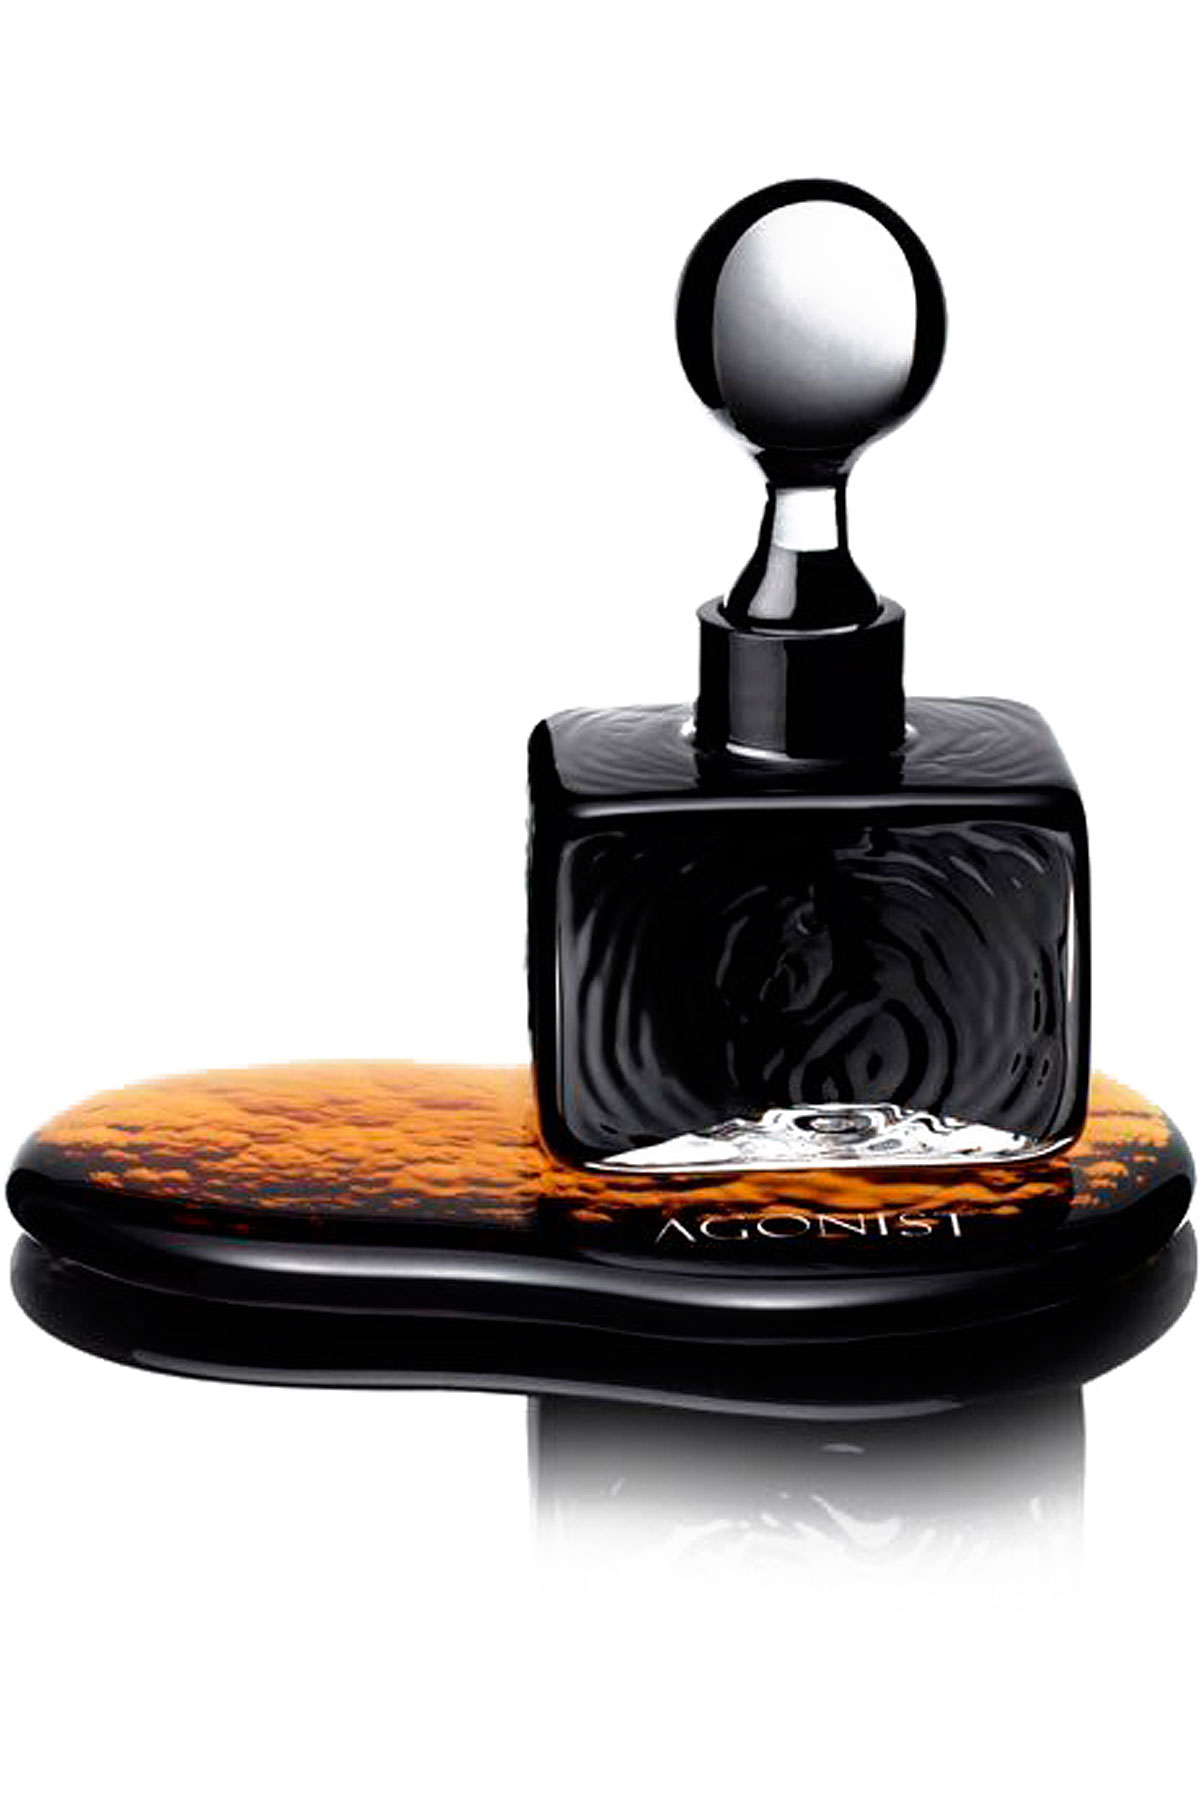 Agonist Fragrances for Men, Black Amber Sculpture - Eau De Parfum - 50 Ml, 2019, 50 ml